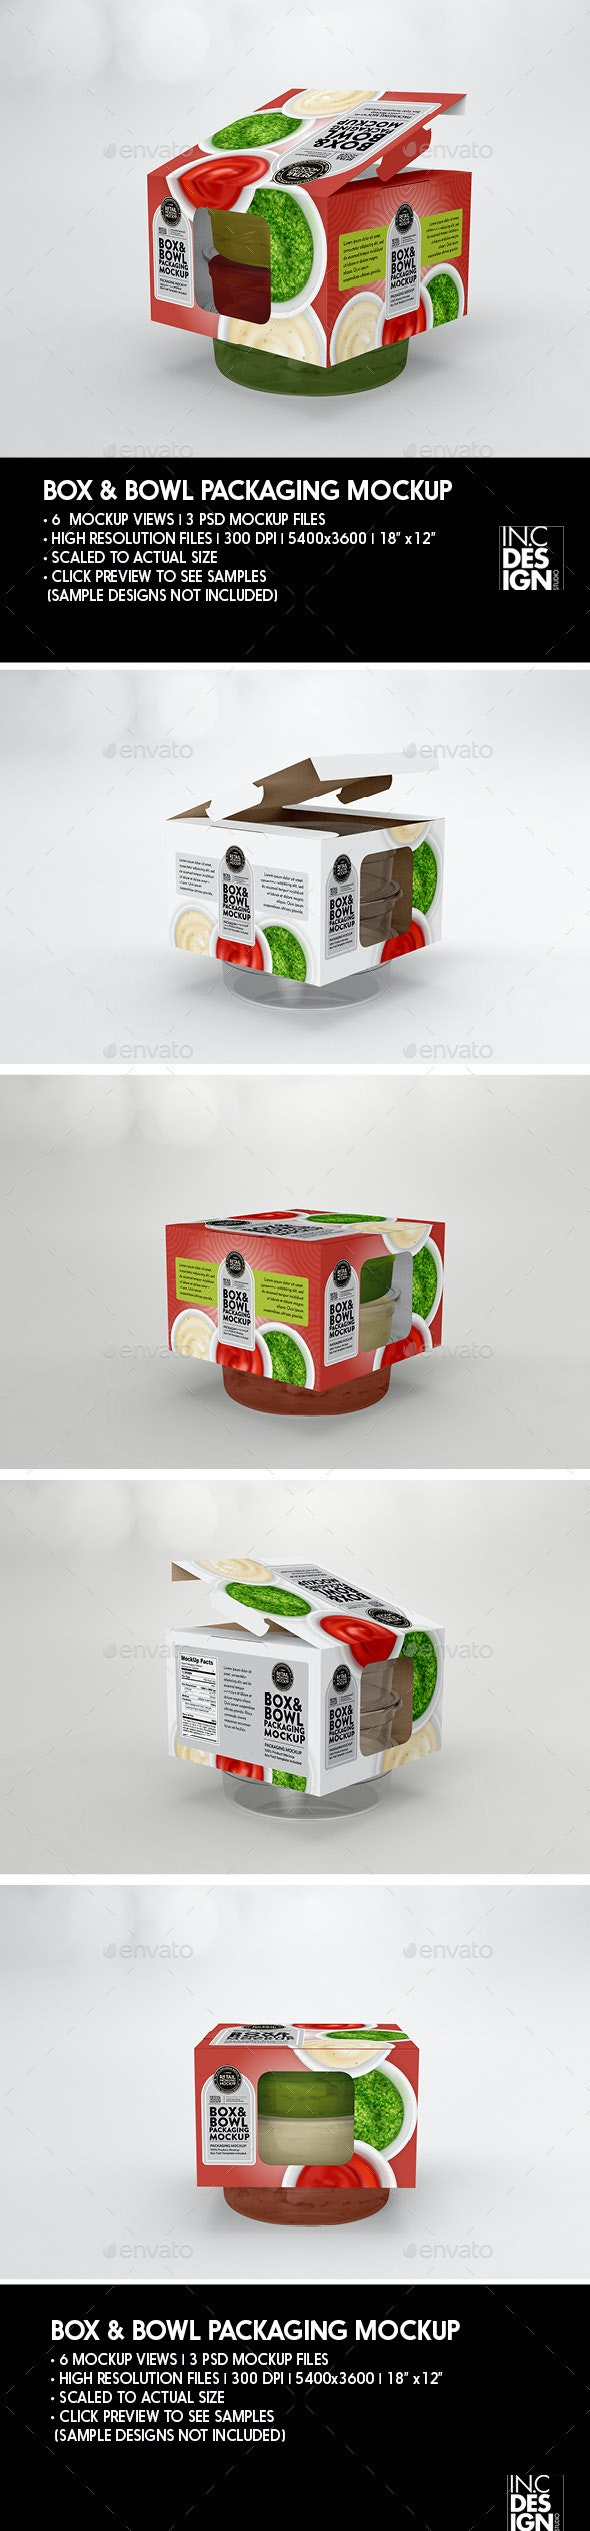 Retail Box and Bowl Packaging Mockup - Food and Drink Packaging